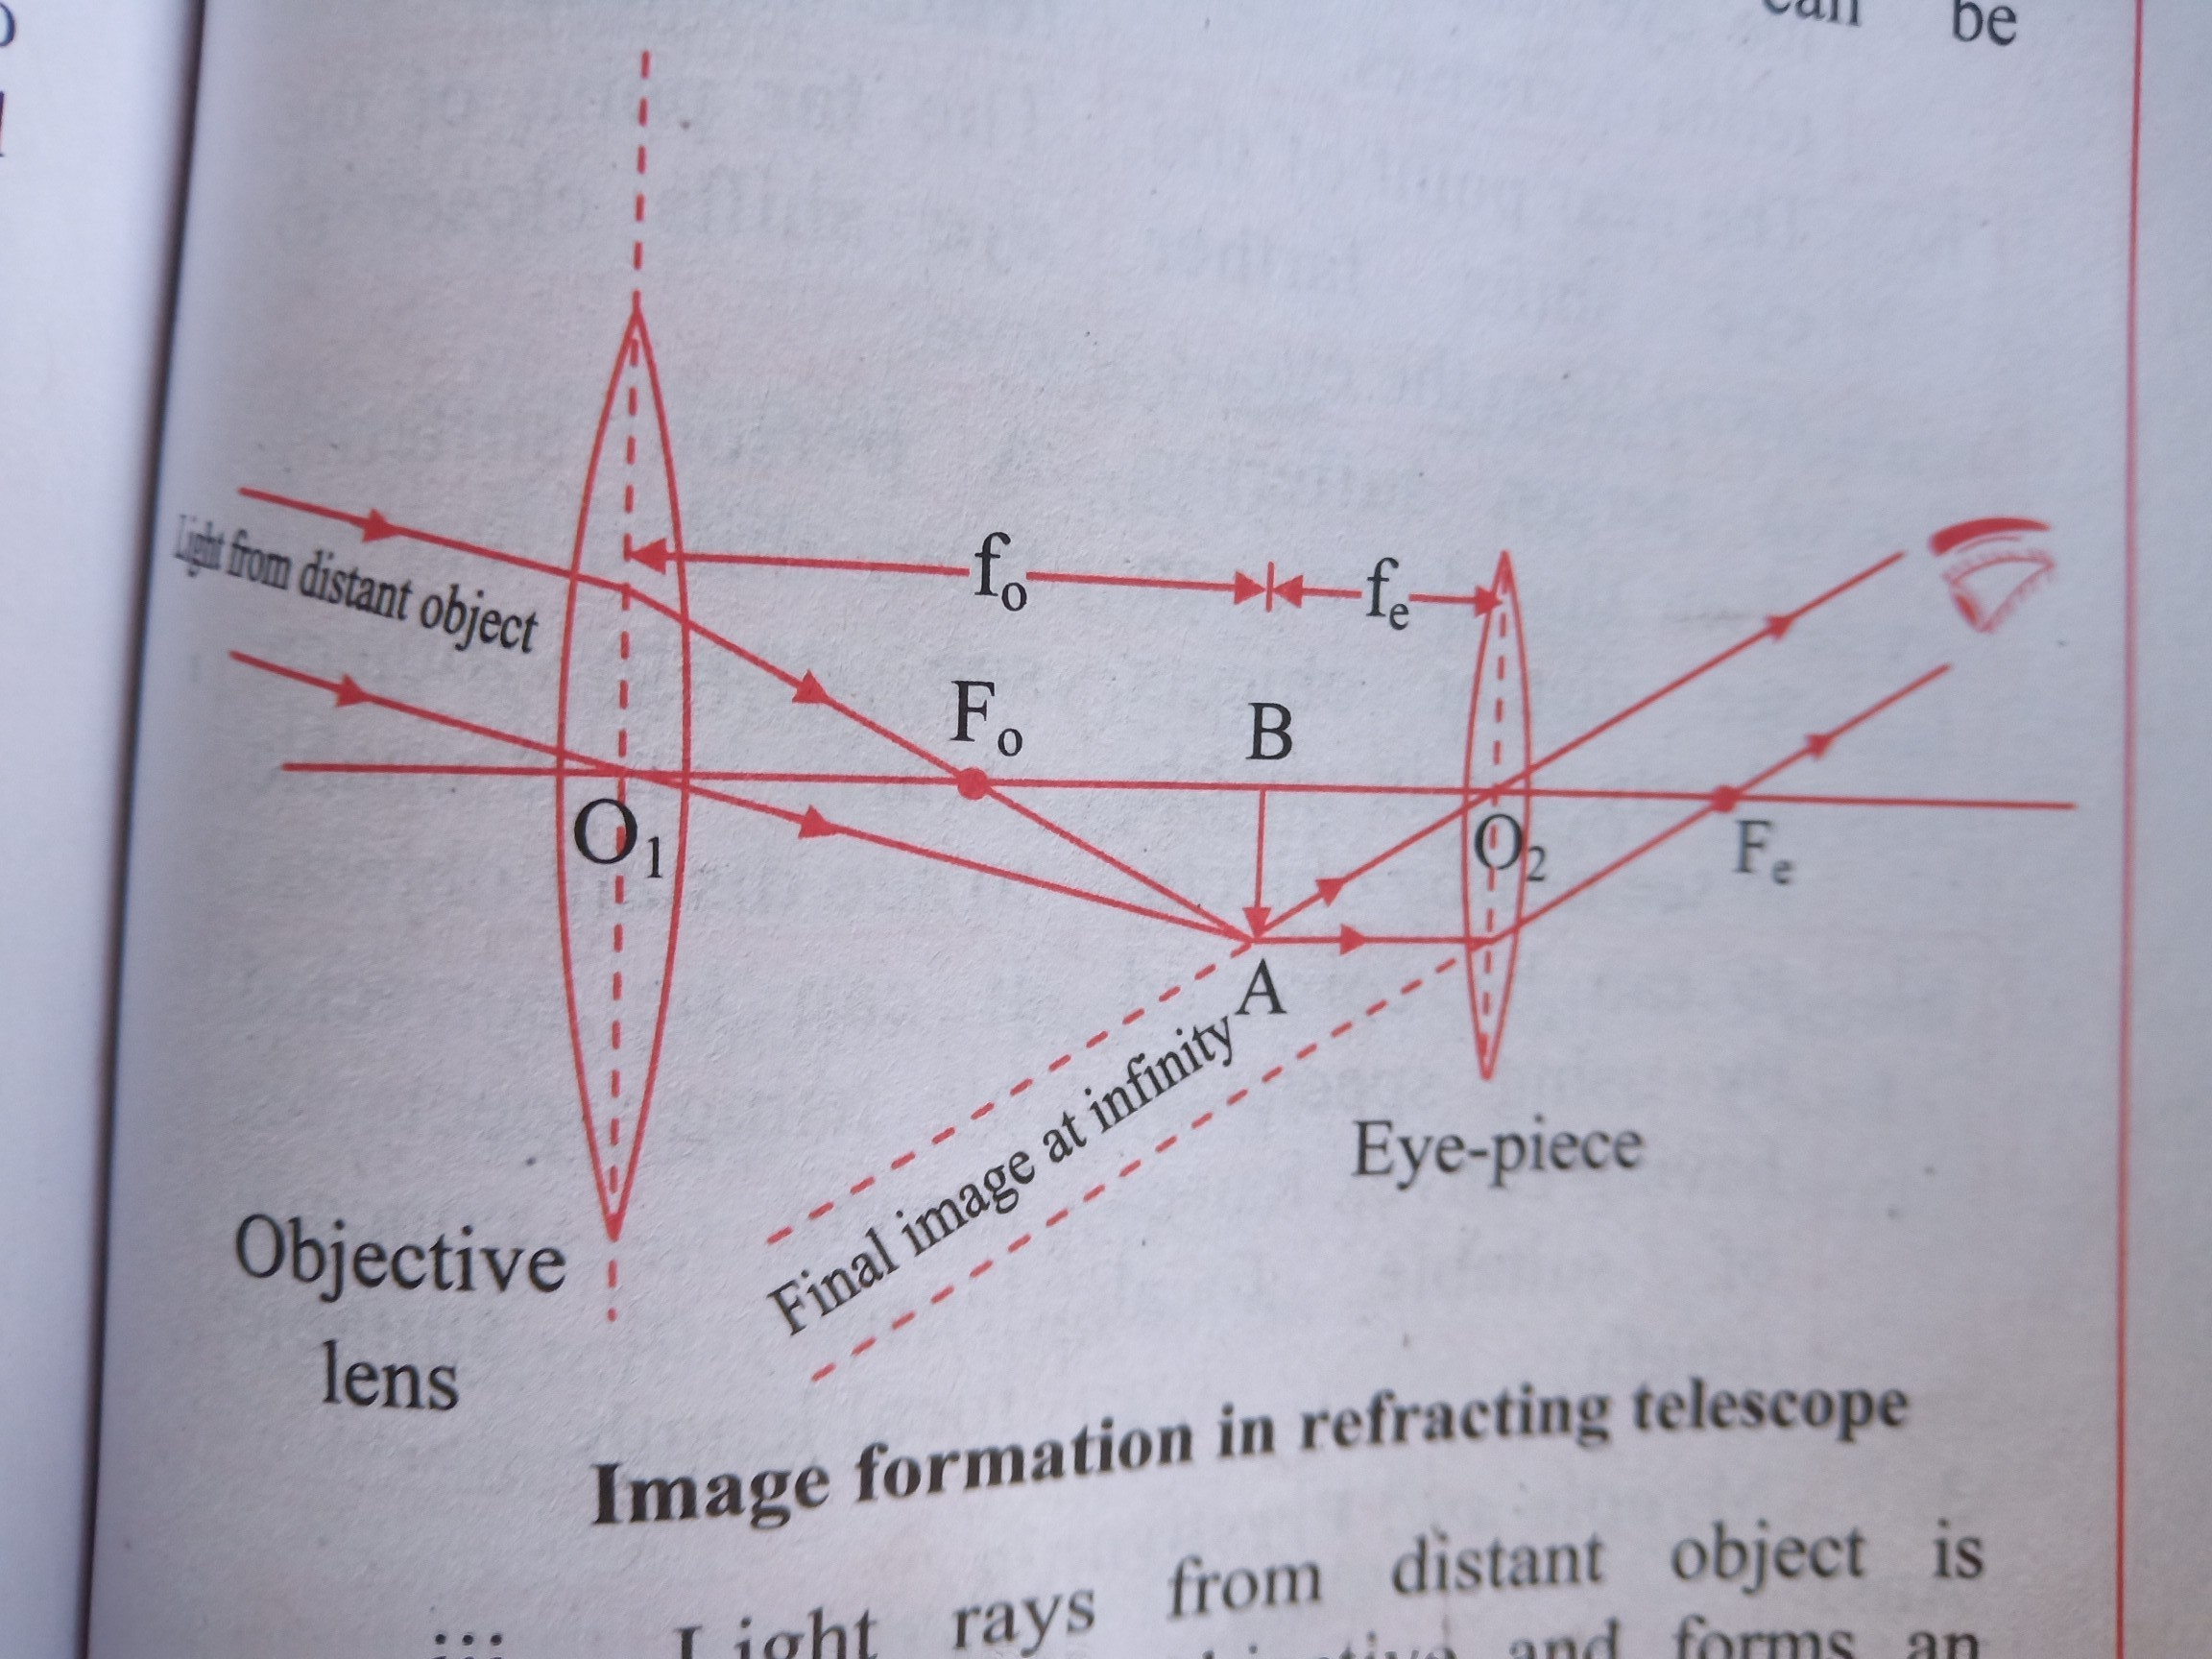 Give the characteristics of image formed by refracting telescope